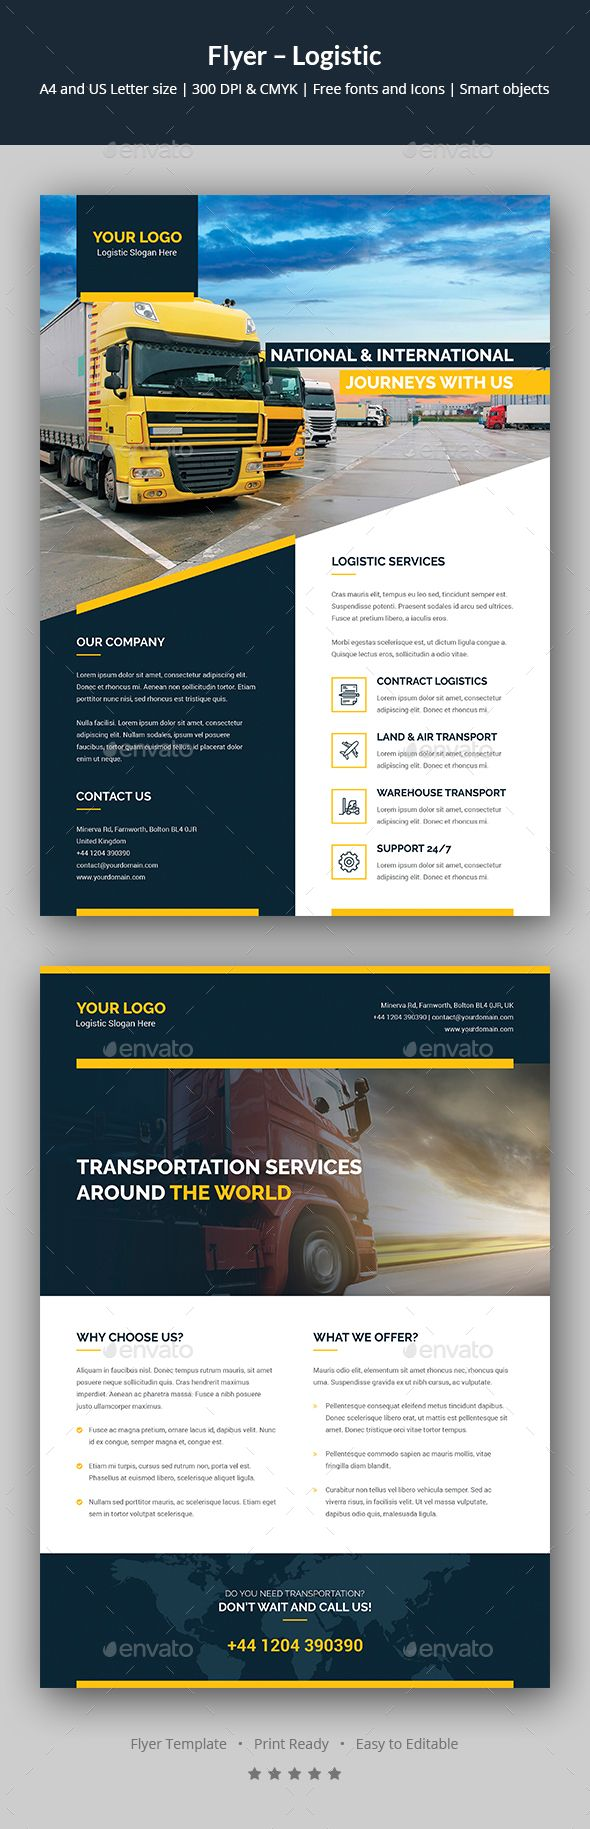 Logistic Flyer Template PSD - A4 and US Letter Size | Flyer